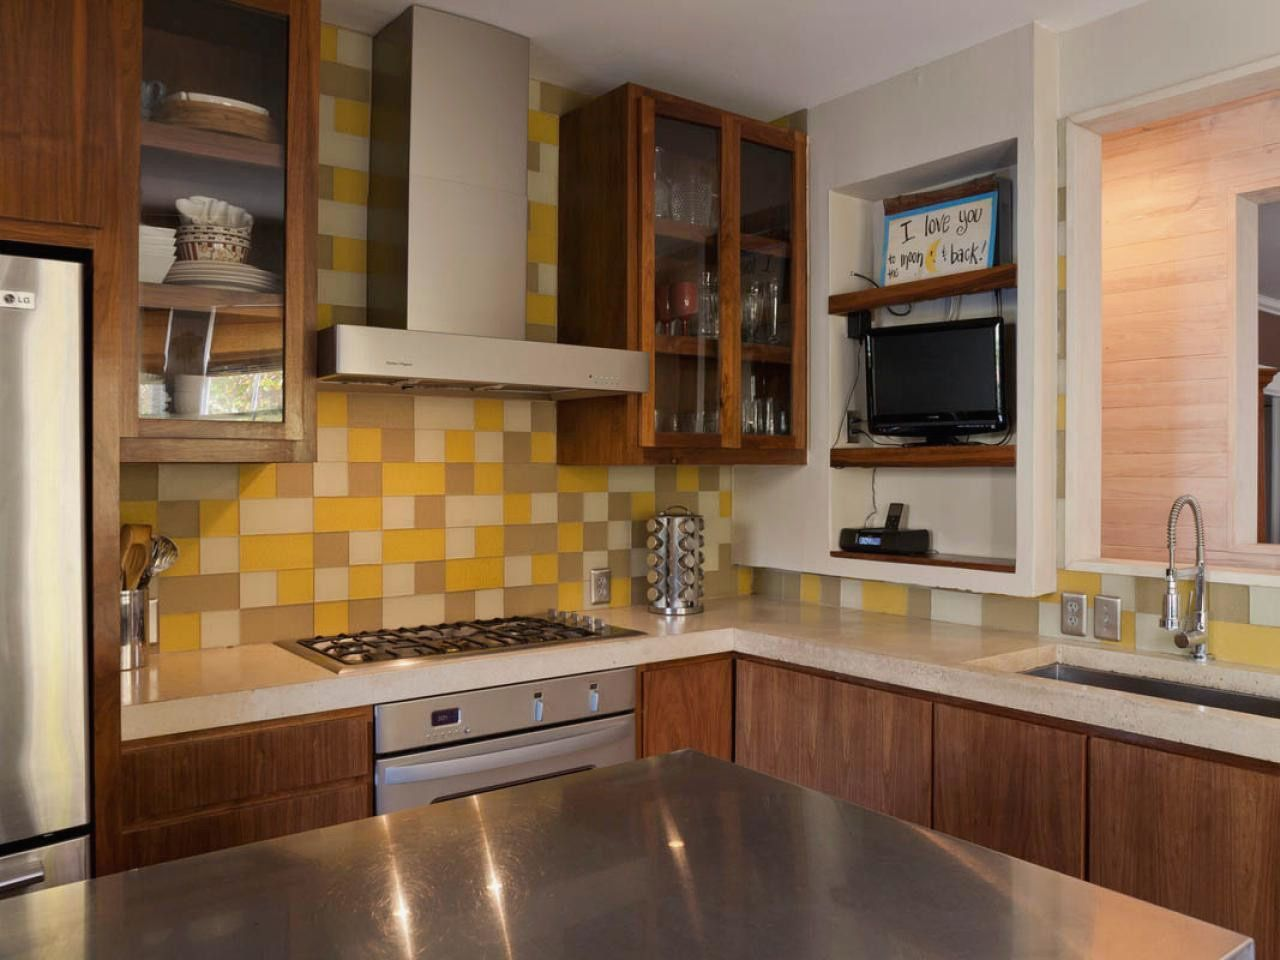 20 Can You Paint Veneer Kitchen Cabinets Design Ideas For Small Kitchens In 2020 Kitchen Cabinet Inspiration Building Kitchen Cabinets Kitchen Cabinet Design Photos